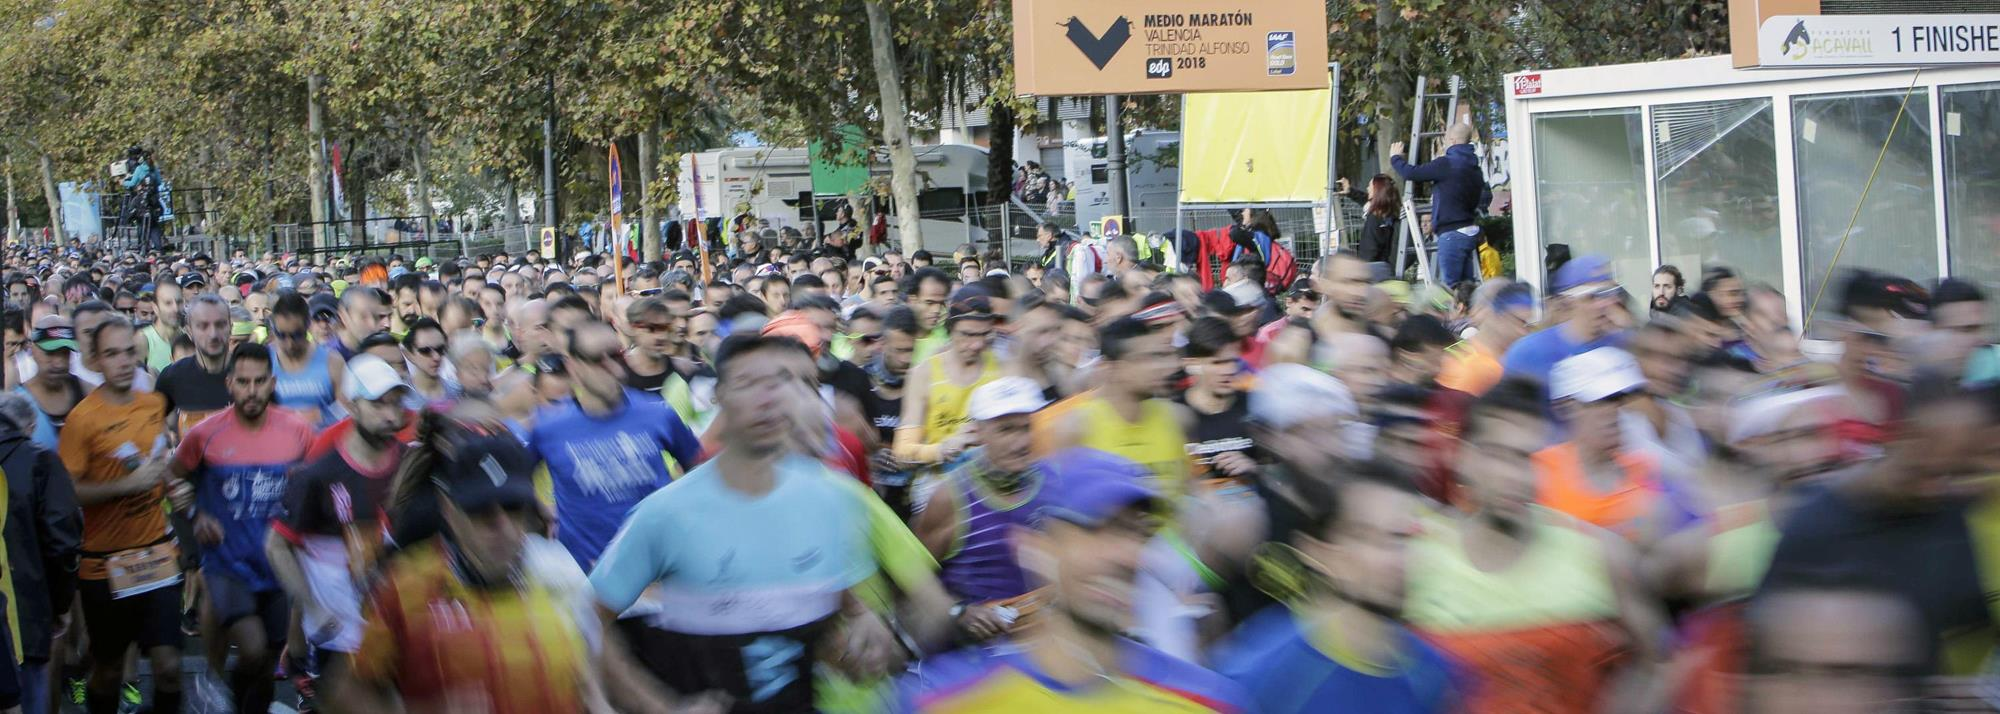 Valencia Marathon reaps rewards from adopting World Athletics road race medical protocol